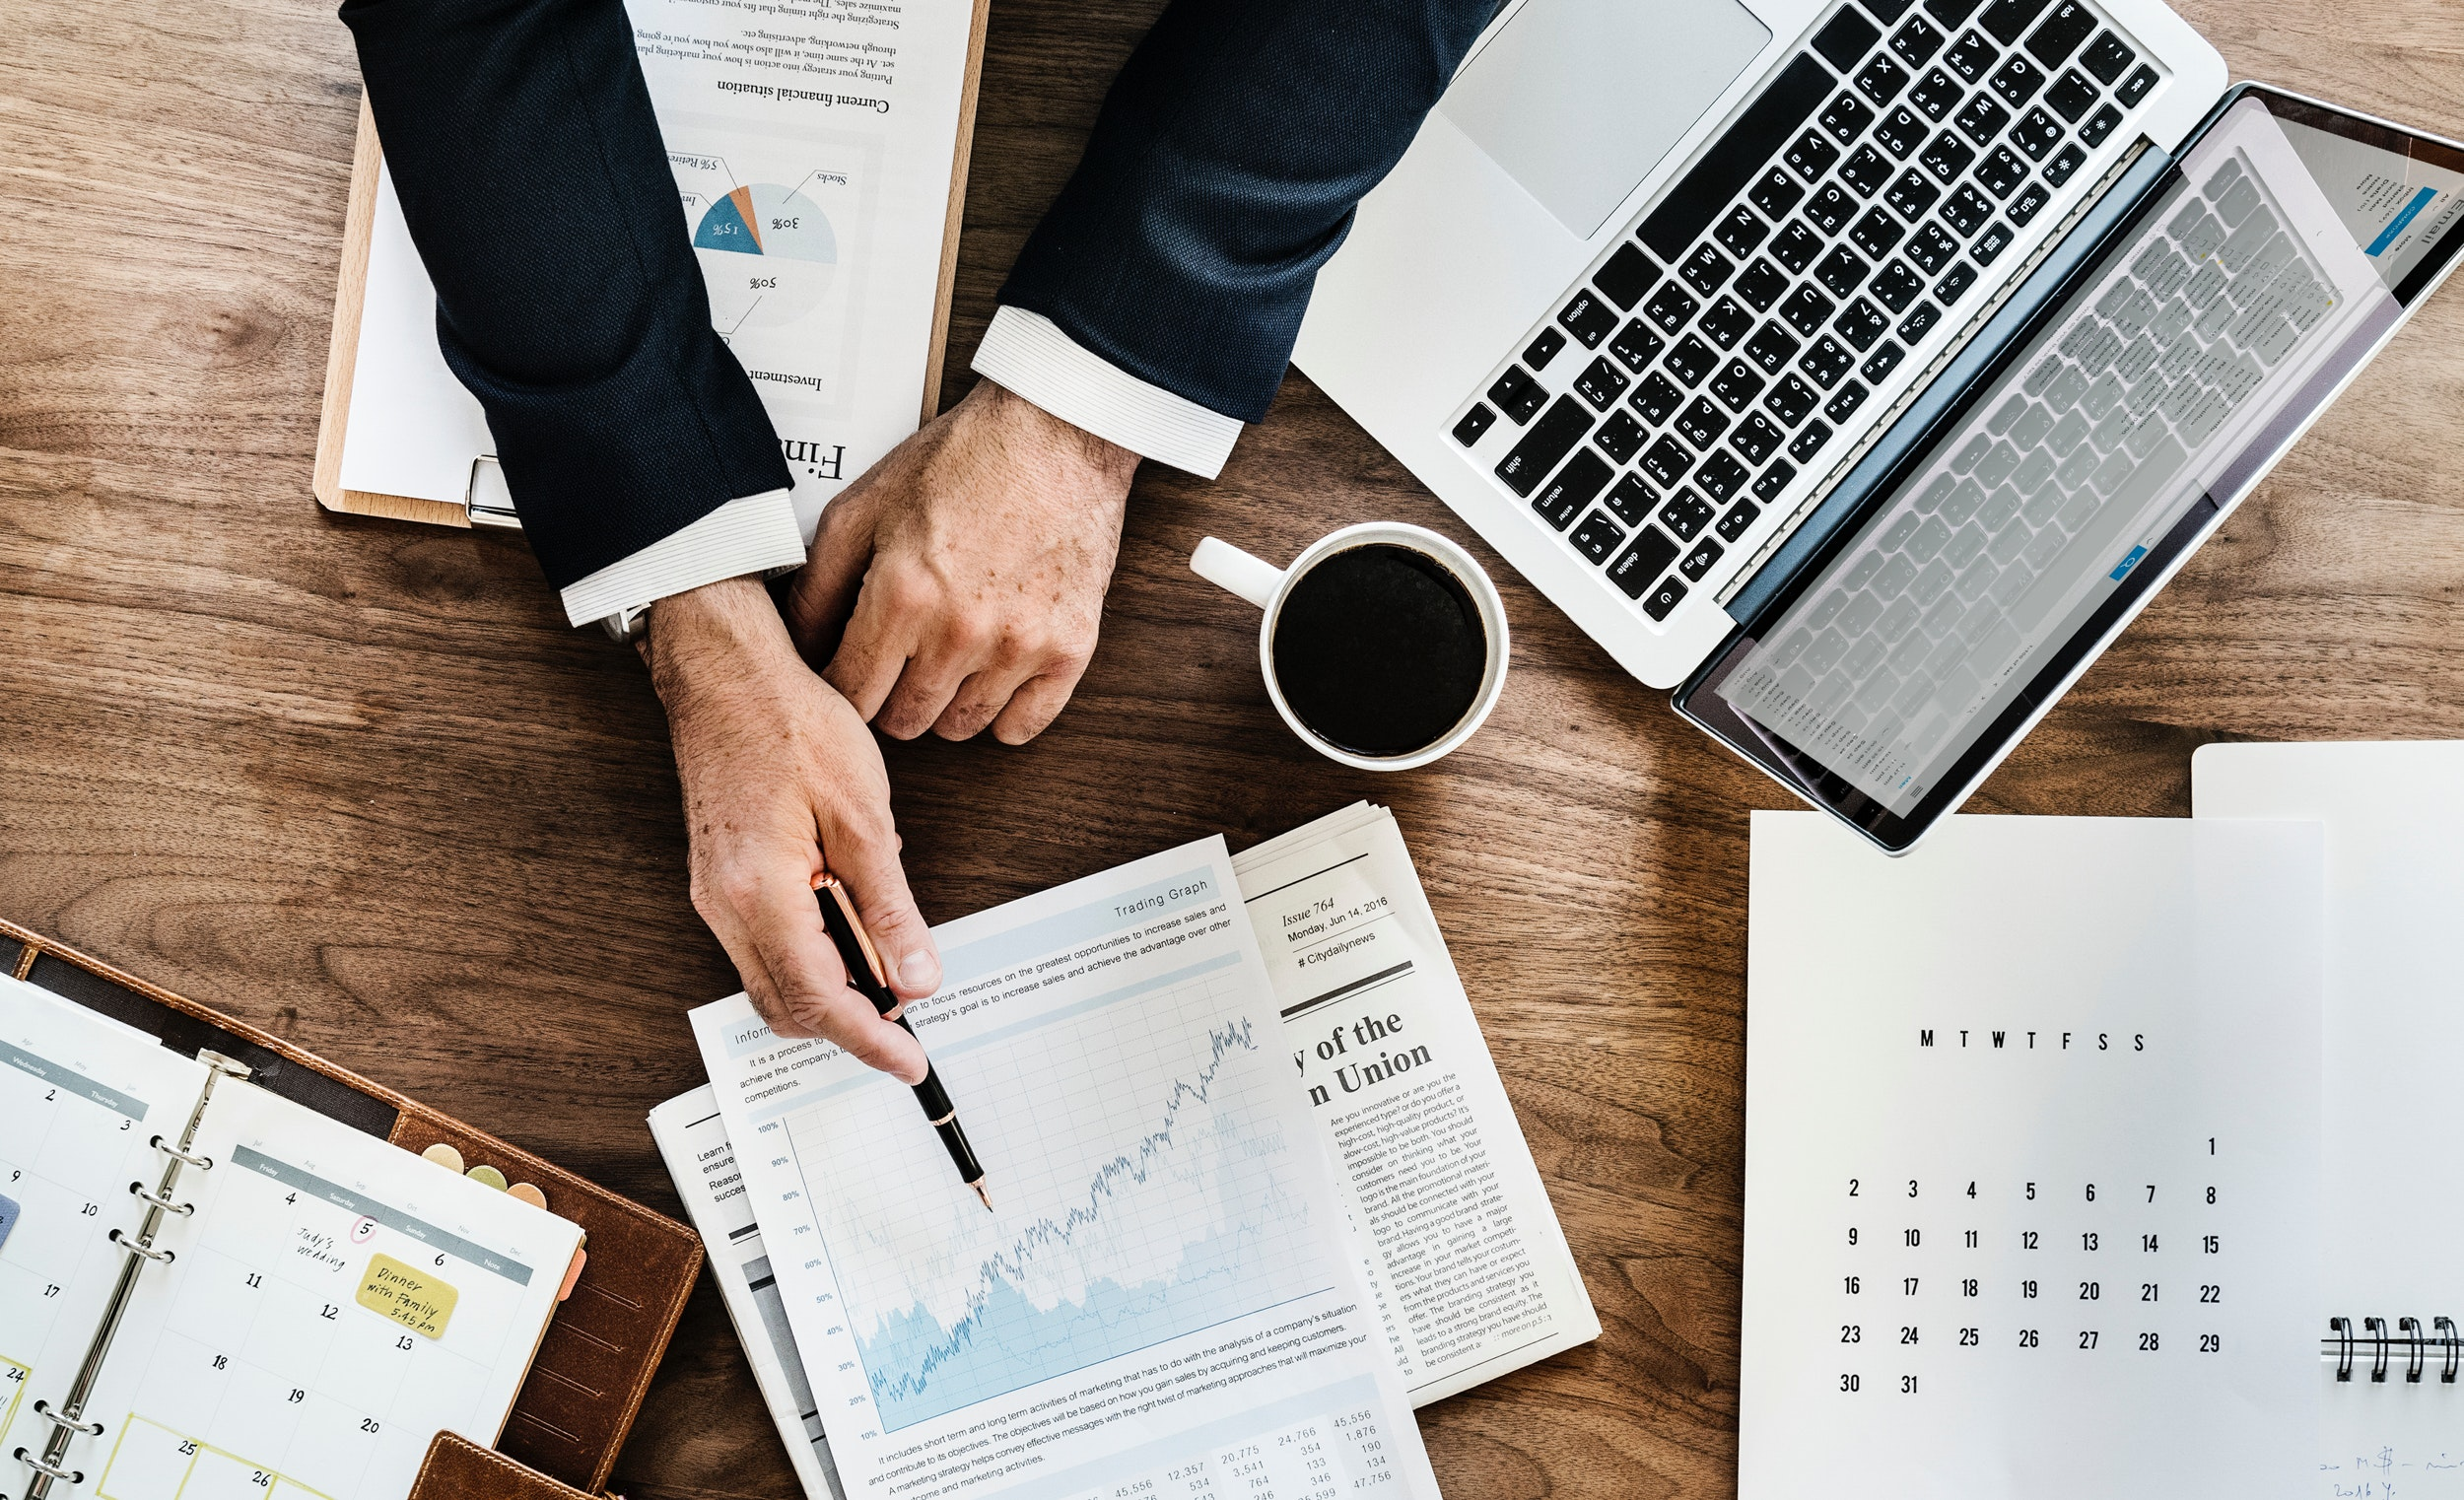 Advanced Diploma in Business with Accounting - Click here for further information on the Advanced Diploma in Business with Accounting course at New Beacon Campus